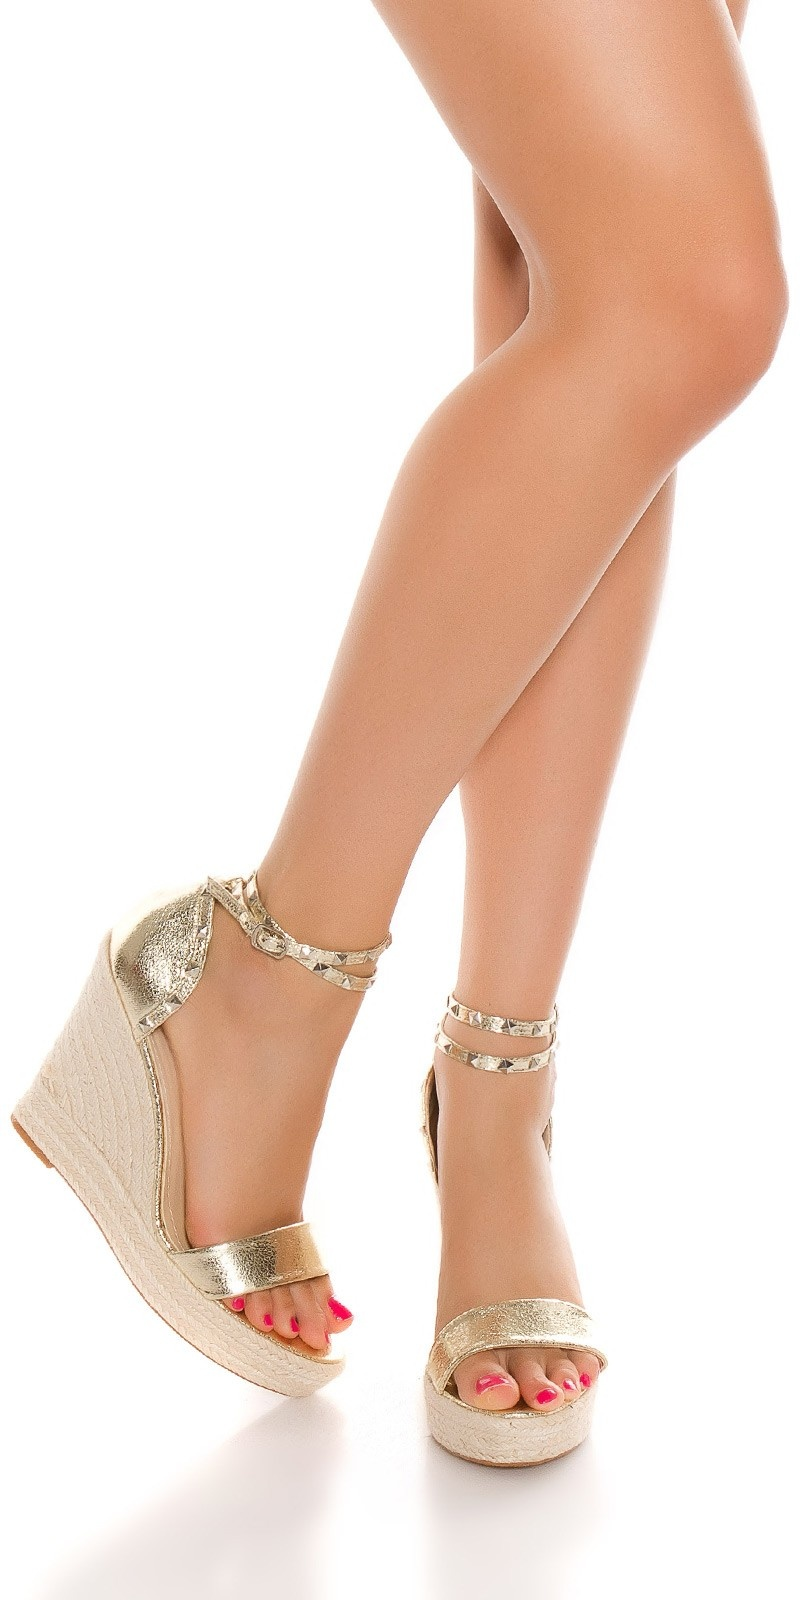 Sexy Plateau-sandals w. ankle straps Gold